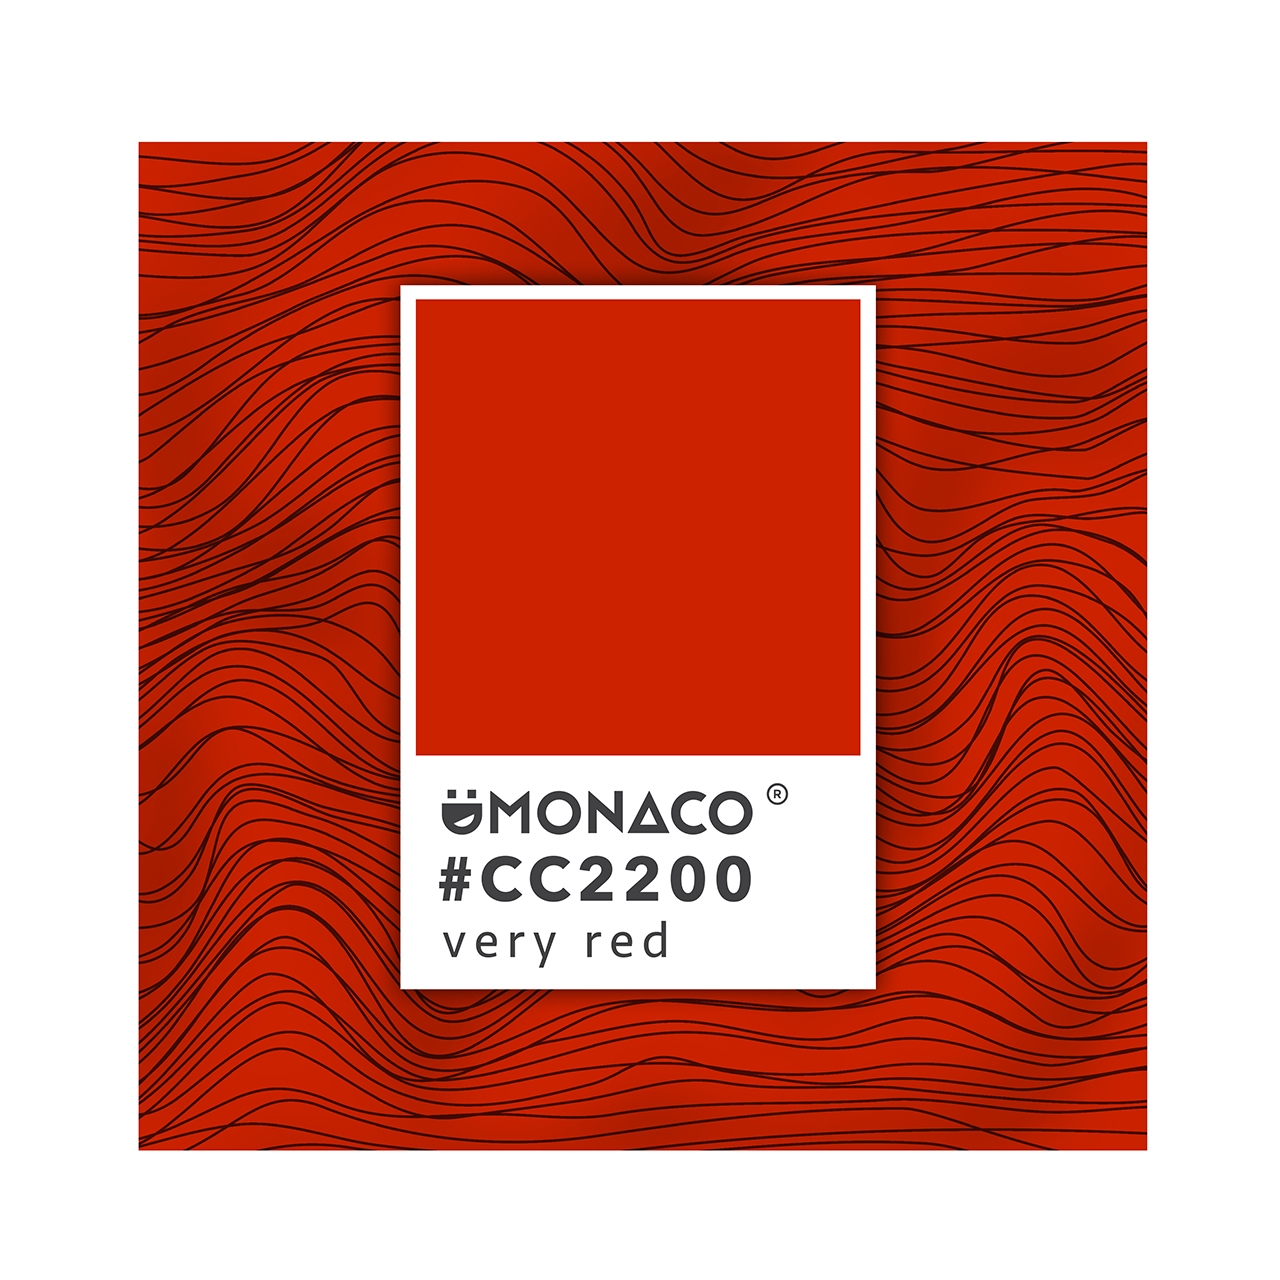 DMONACO PANTONE Very Red